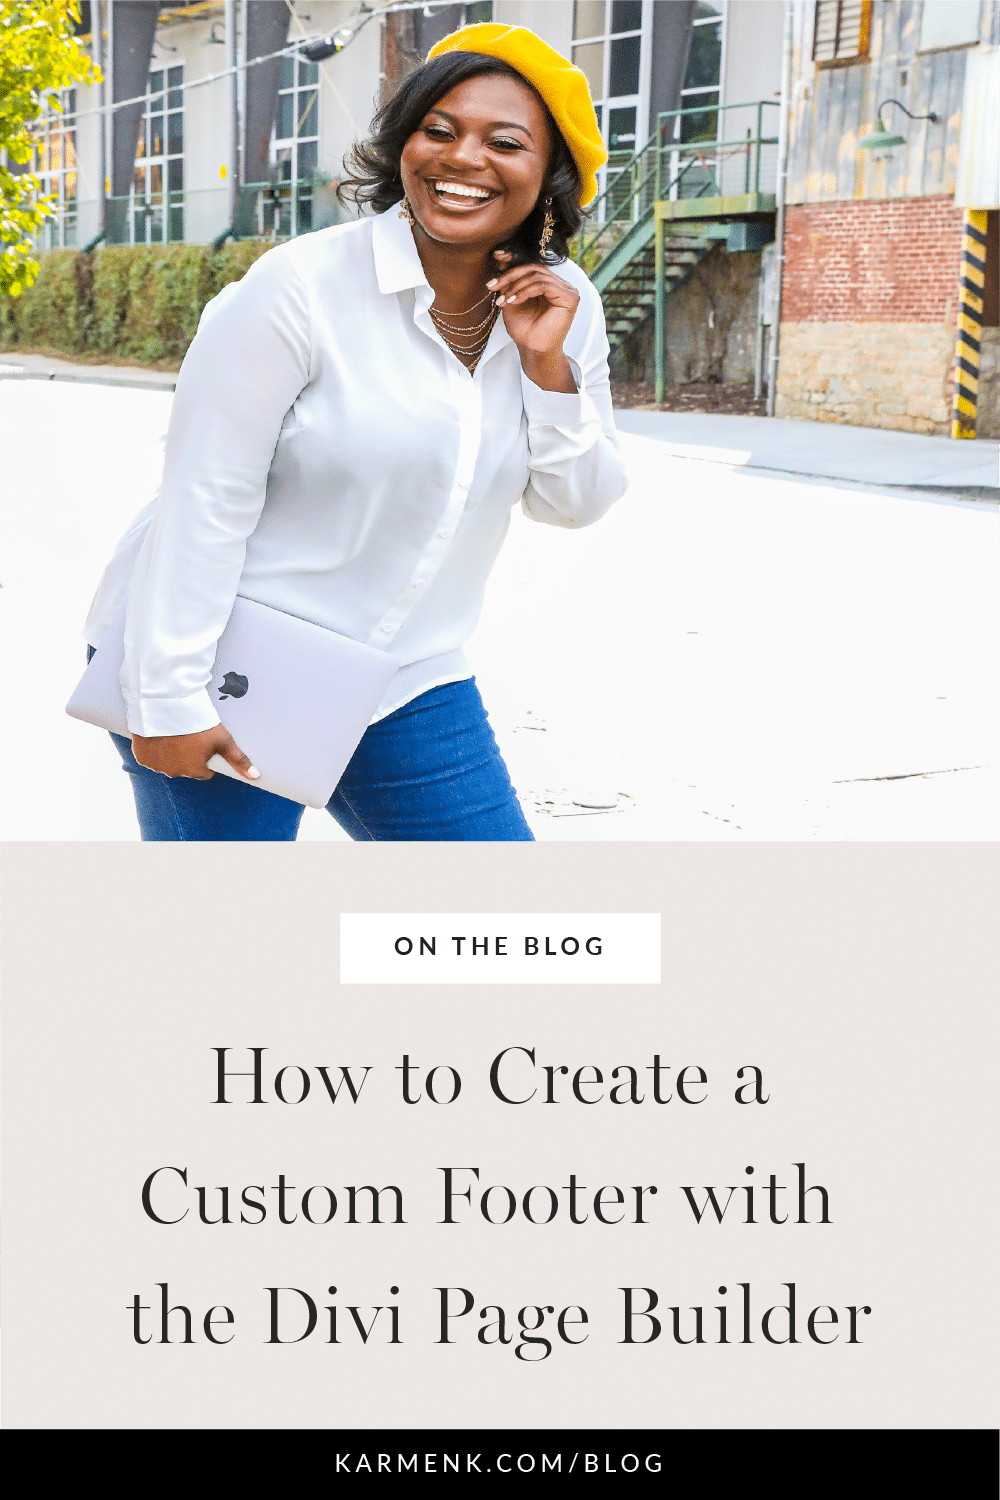 How to Create a Custom Footer with the Divi Page Builder